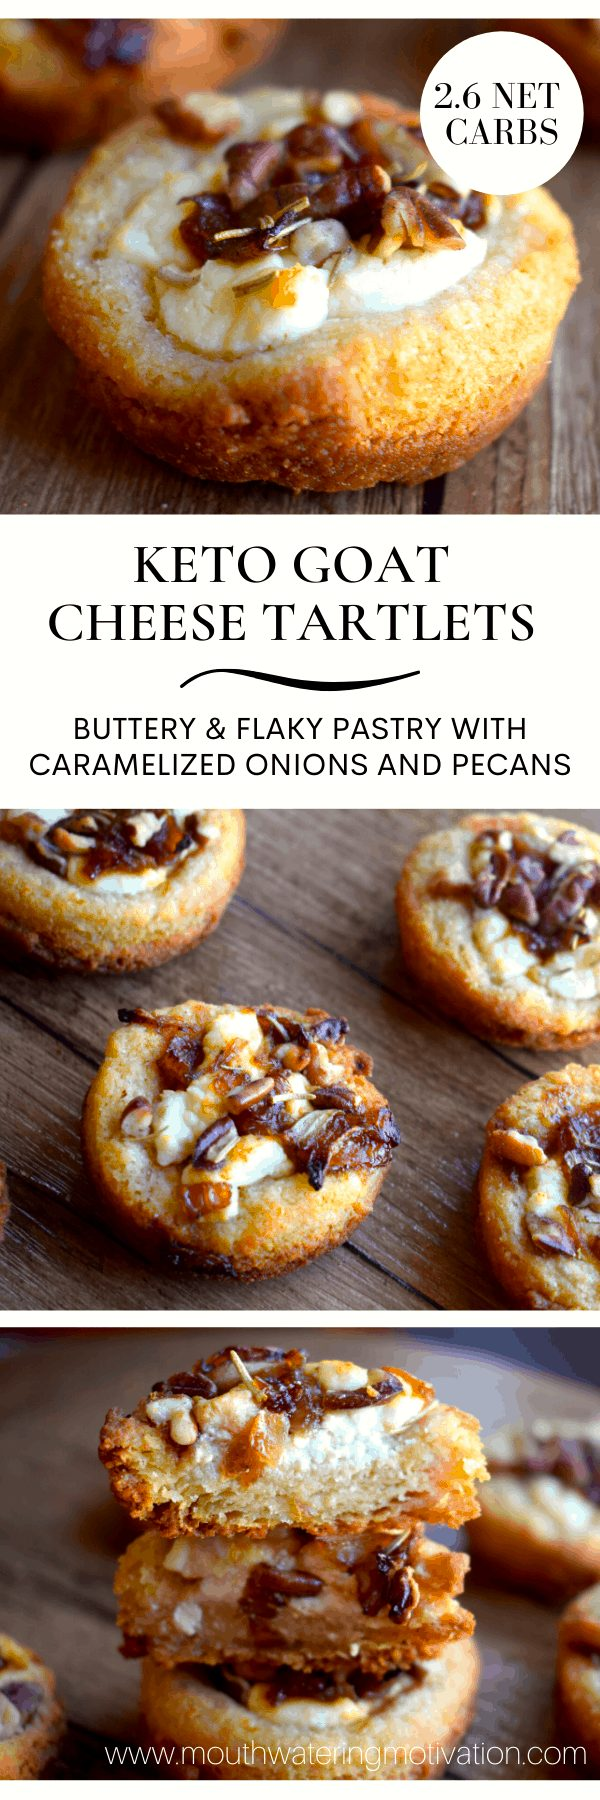 KETO GOAT CHEESE TARTLETS